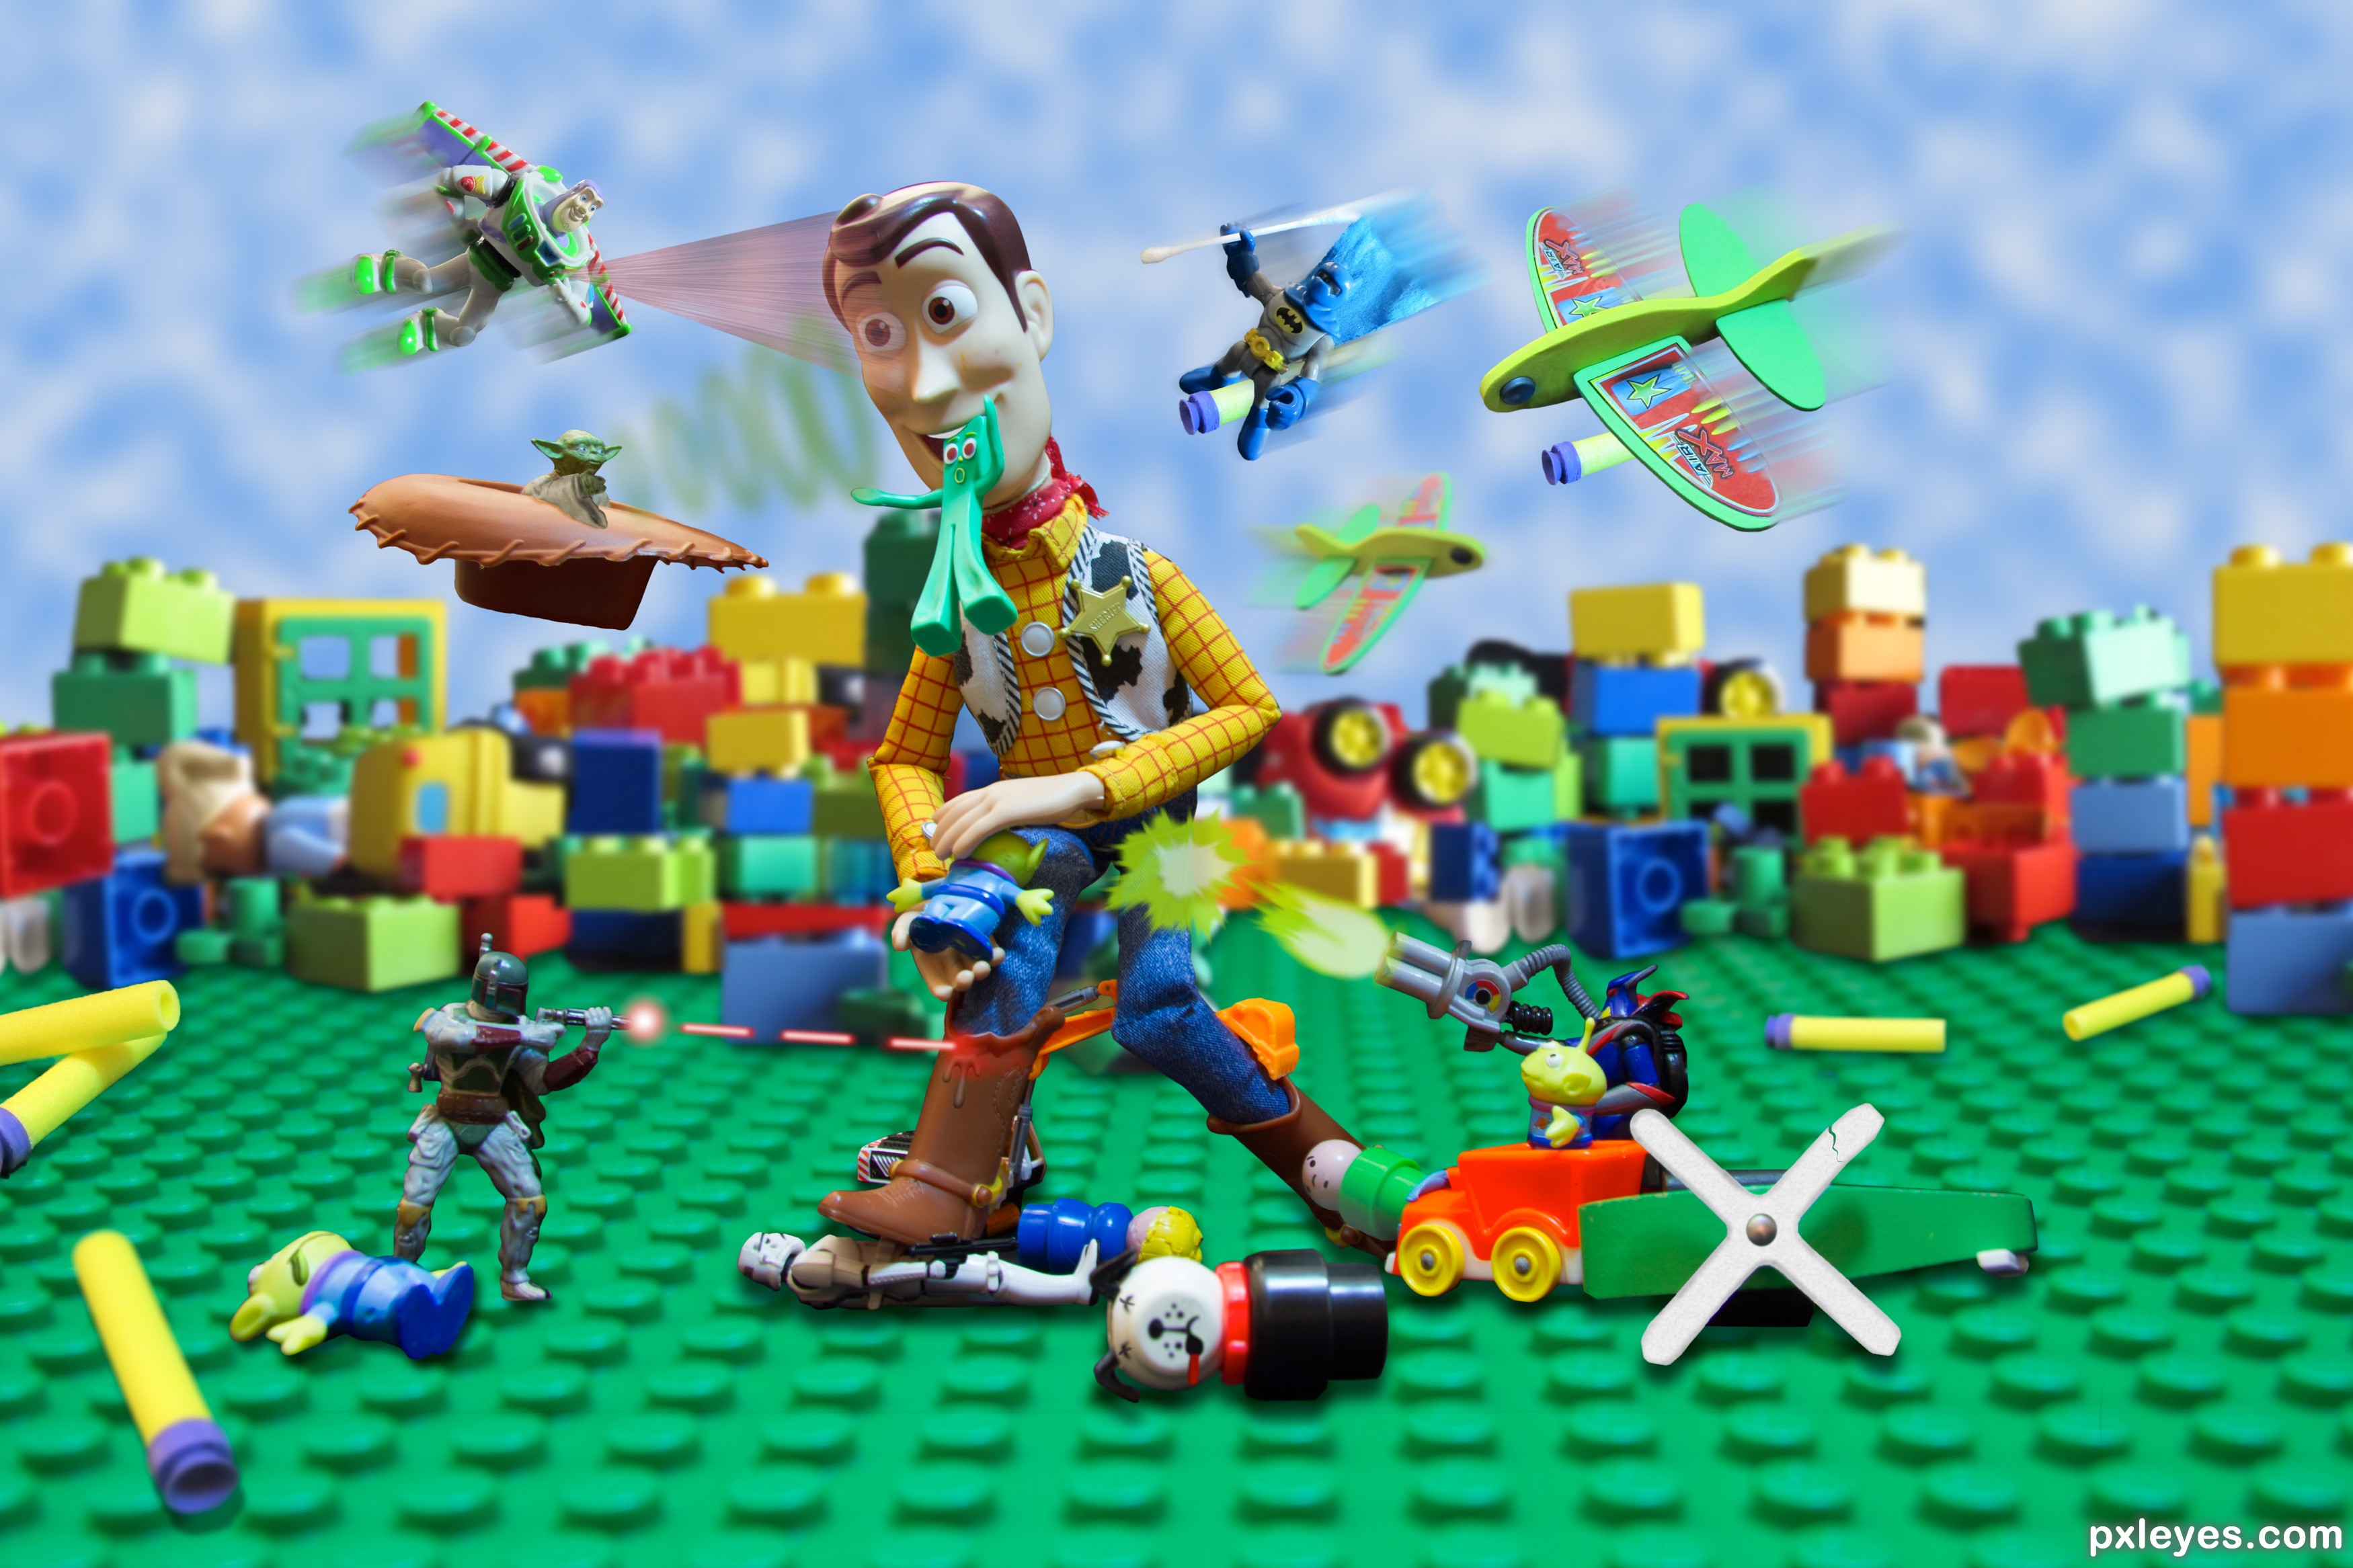 Australia's best toy shops and online toys store for LEGO, Sylvanian Families, Schleich, Fisher Price, NERF and much more.